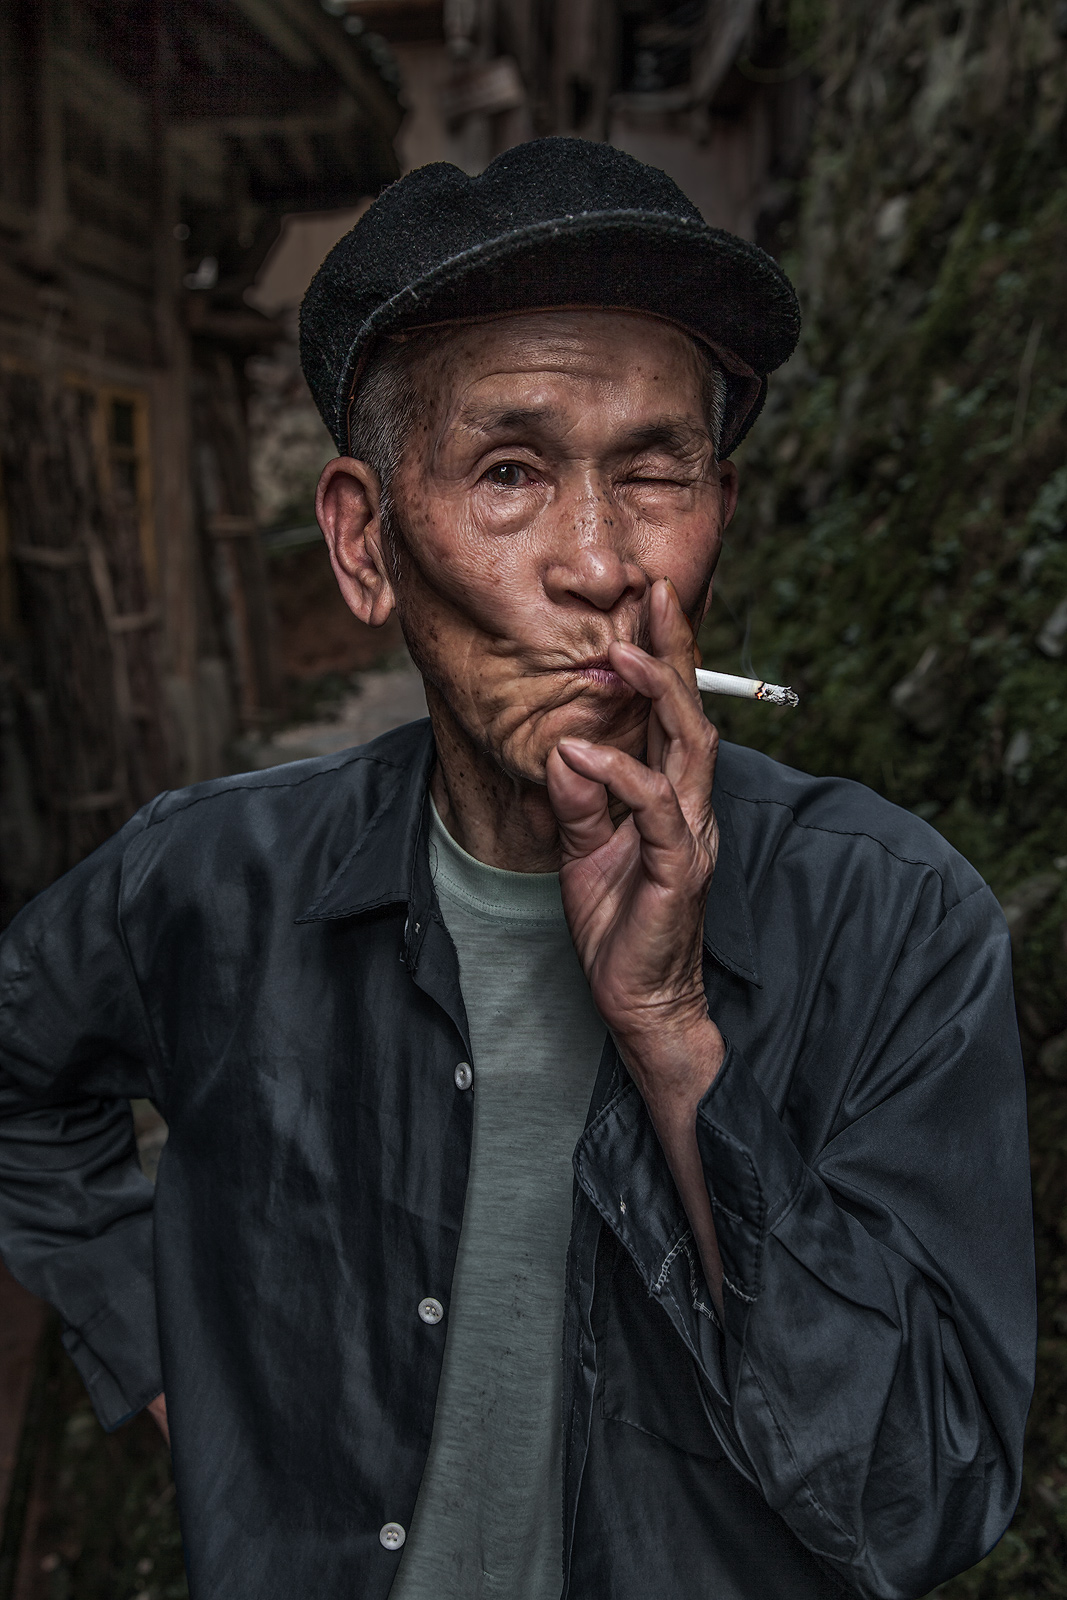 asia,asian,china,chinese,da zhai,da zhai terrace fields,dazhai,elderly,environmental portait,hat,longji,longji rice terraces,longsheng,male,man,old,older,people,portrait,smoking,standing,terraces,tian, photo